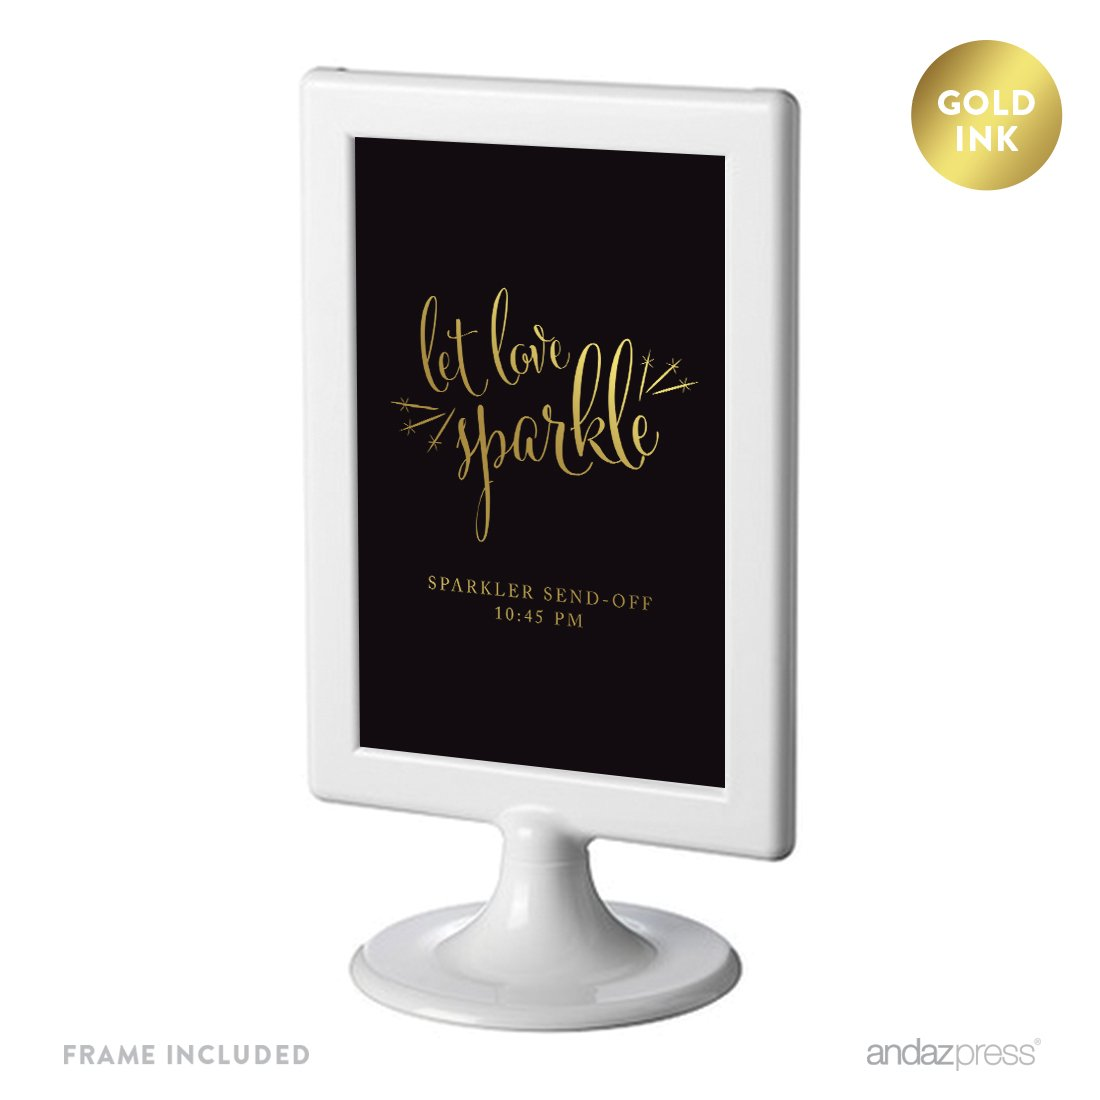 Andaz Press Personalized Wedding Framed Party Signs, Black and Metallic Gold Ink, 4x6-inch, Let Love Sparkle, Sparkler Send Off, Double-Sided, 1-Pack, Includes Frame, Custom Made Any Time